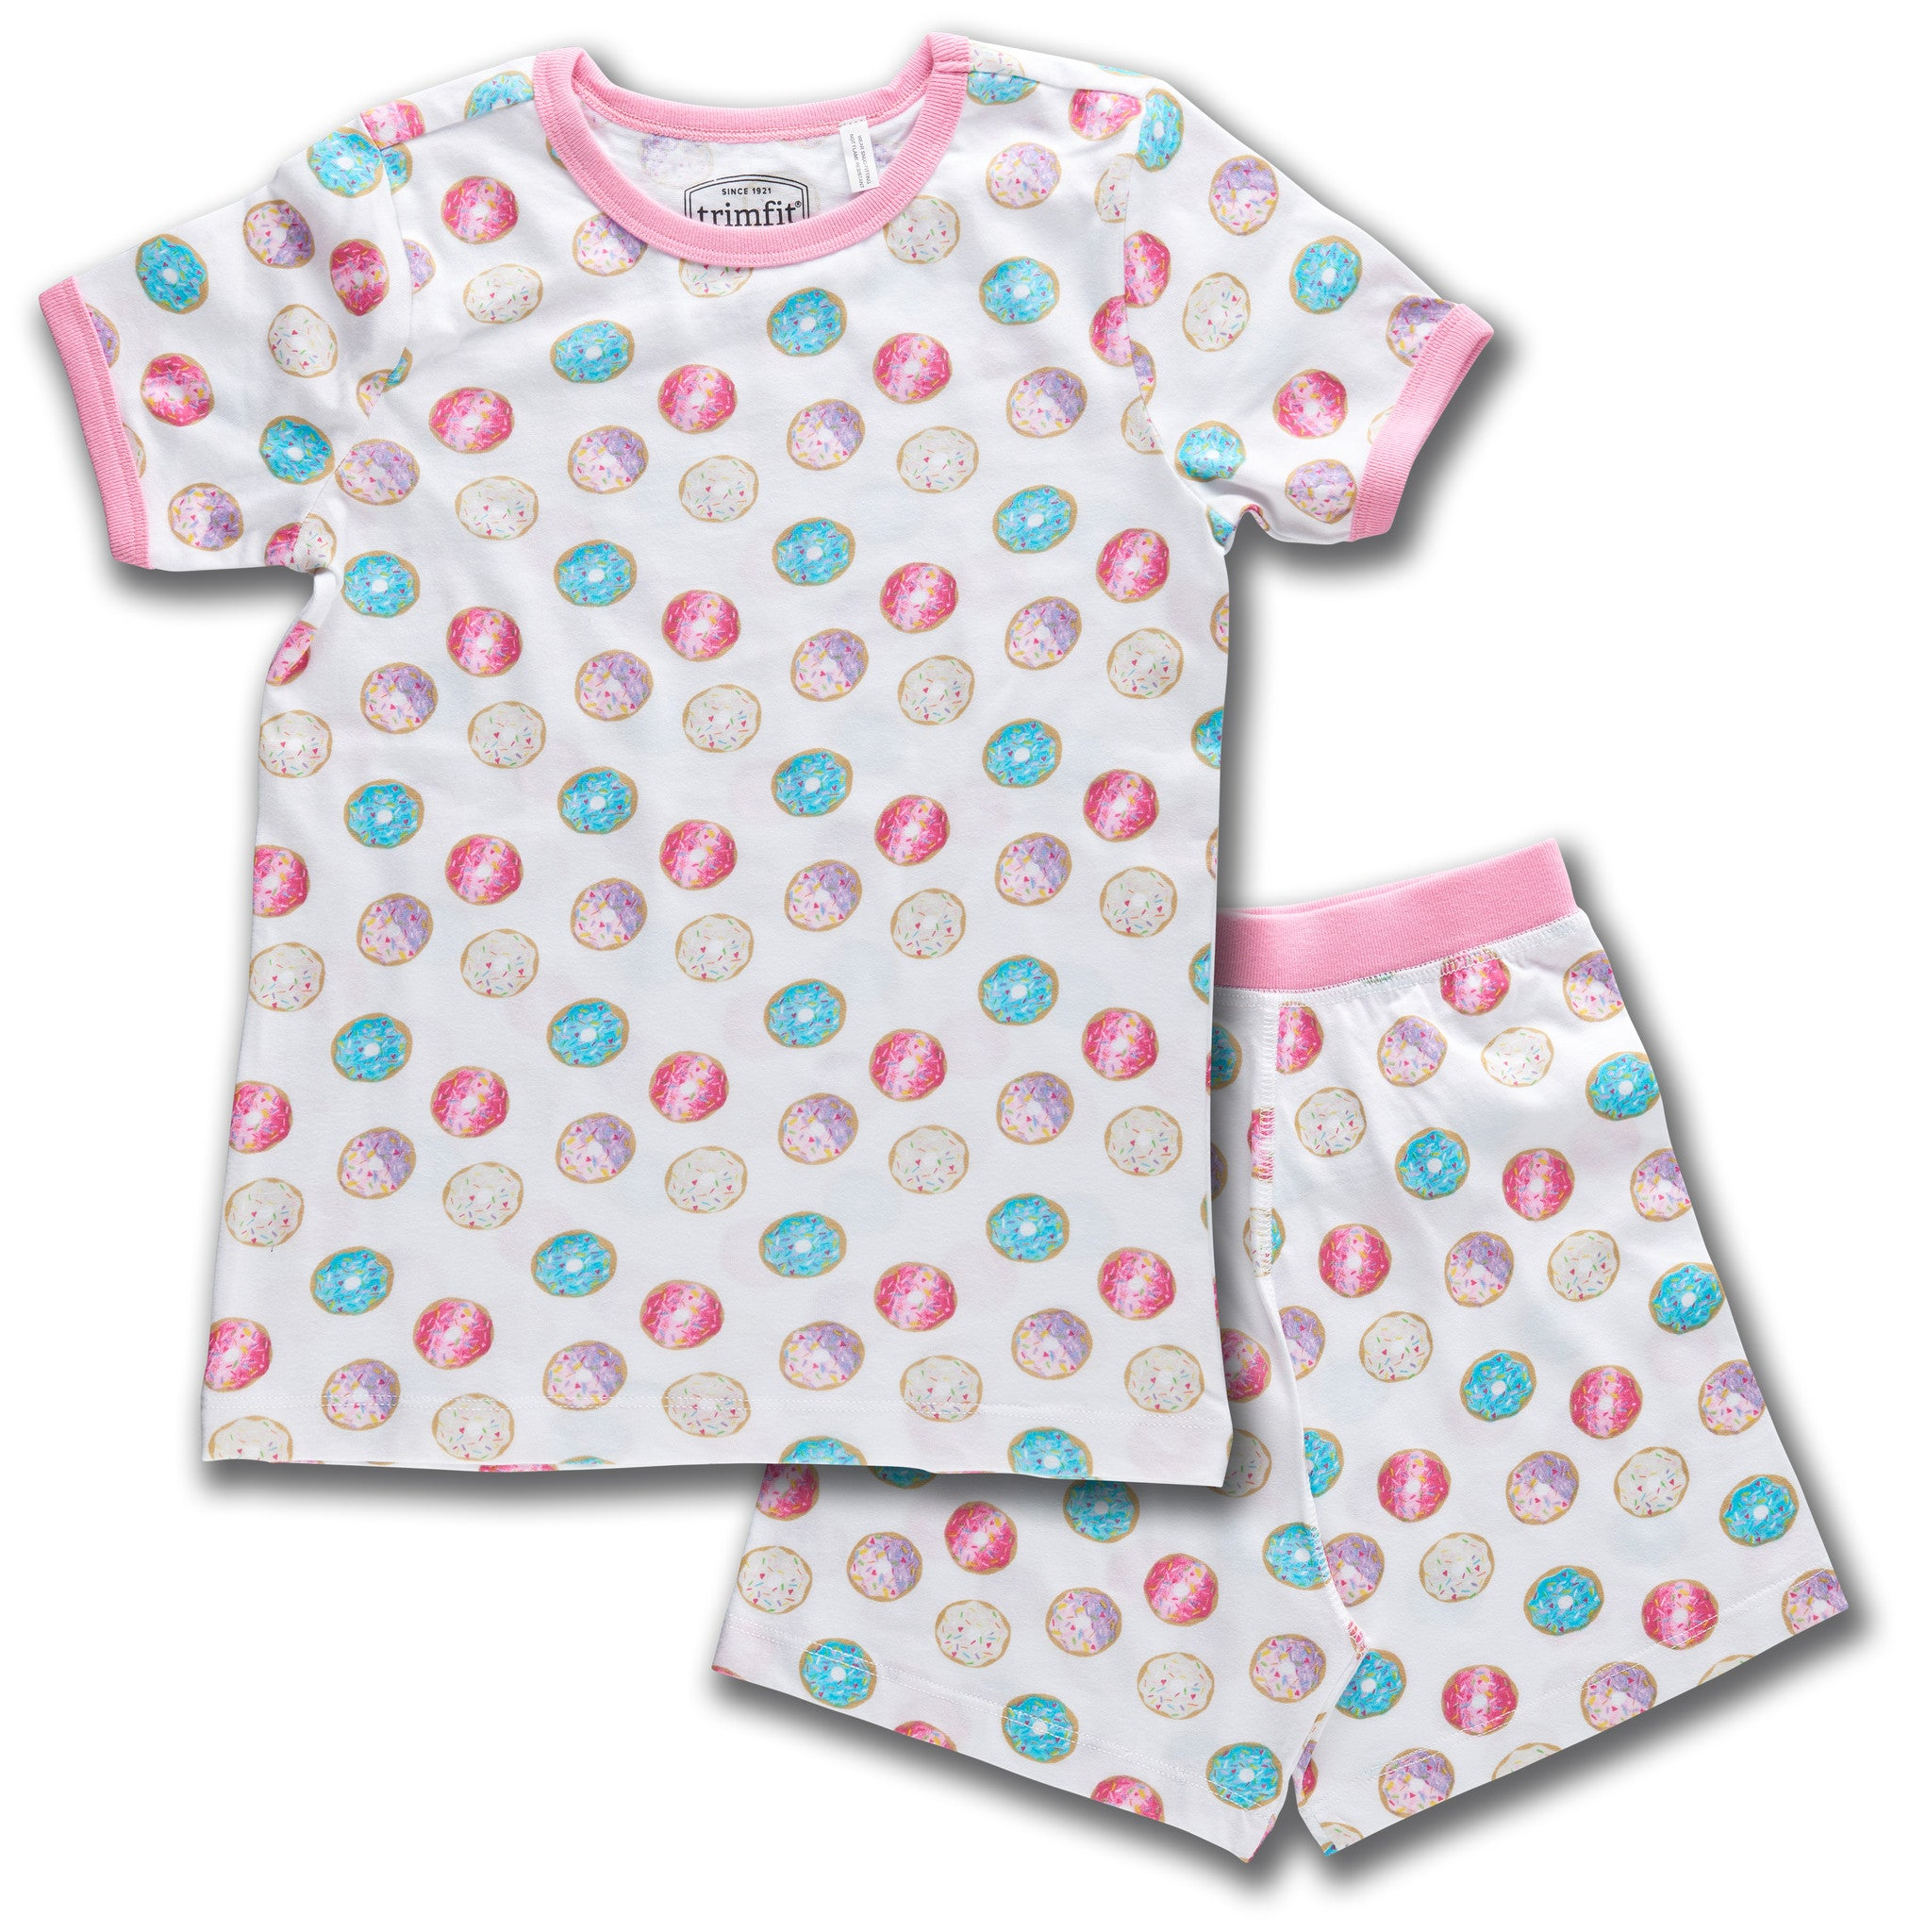 Donuts Organic Cotton Short Sleeve Pajama Set